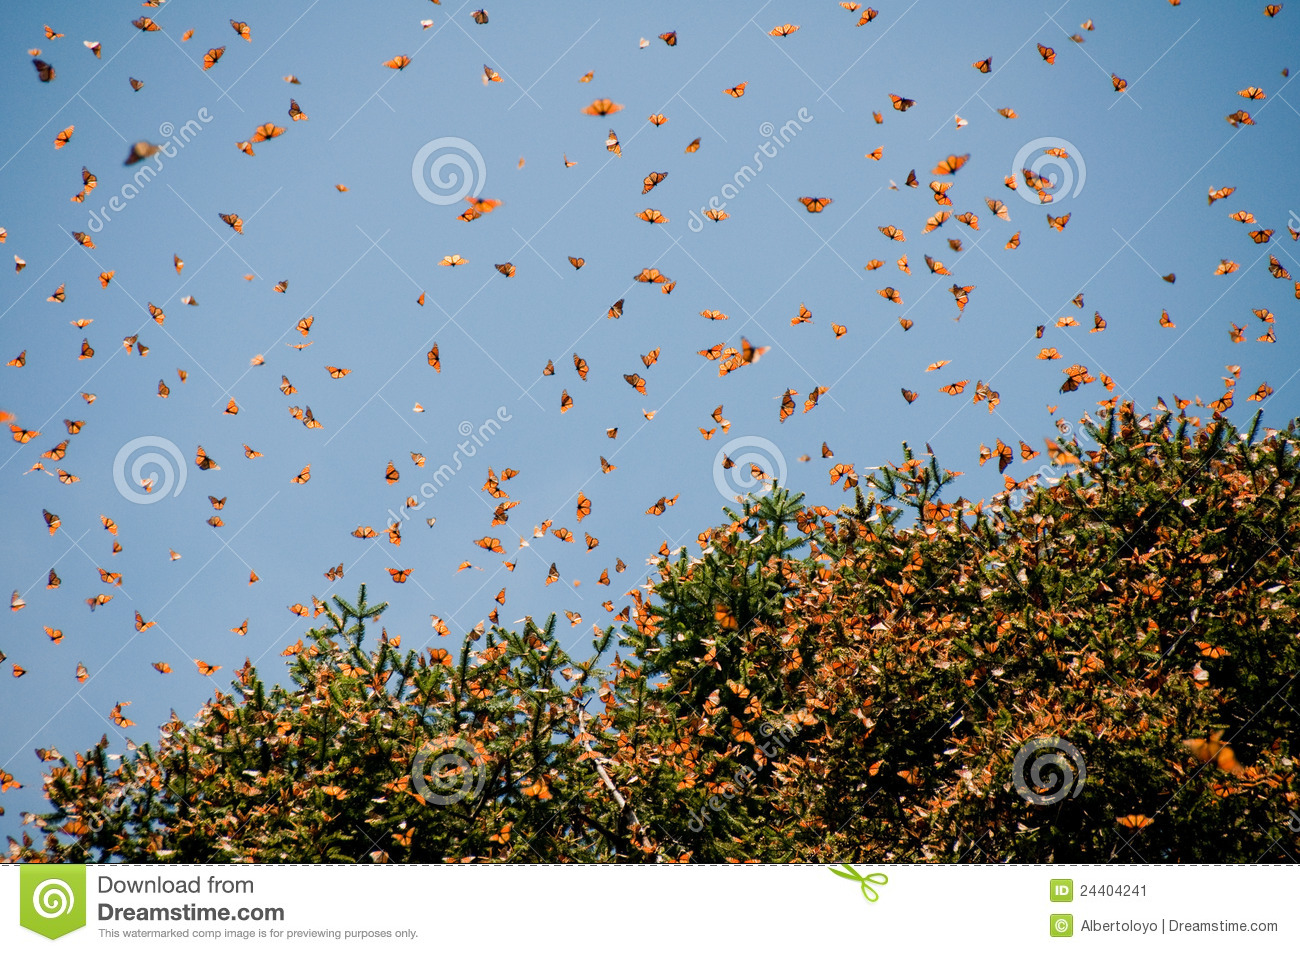 Monarch Butterfly Biosphere Reserve, Mexico